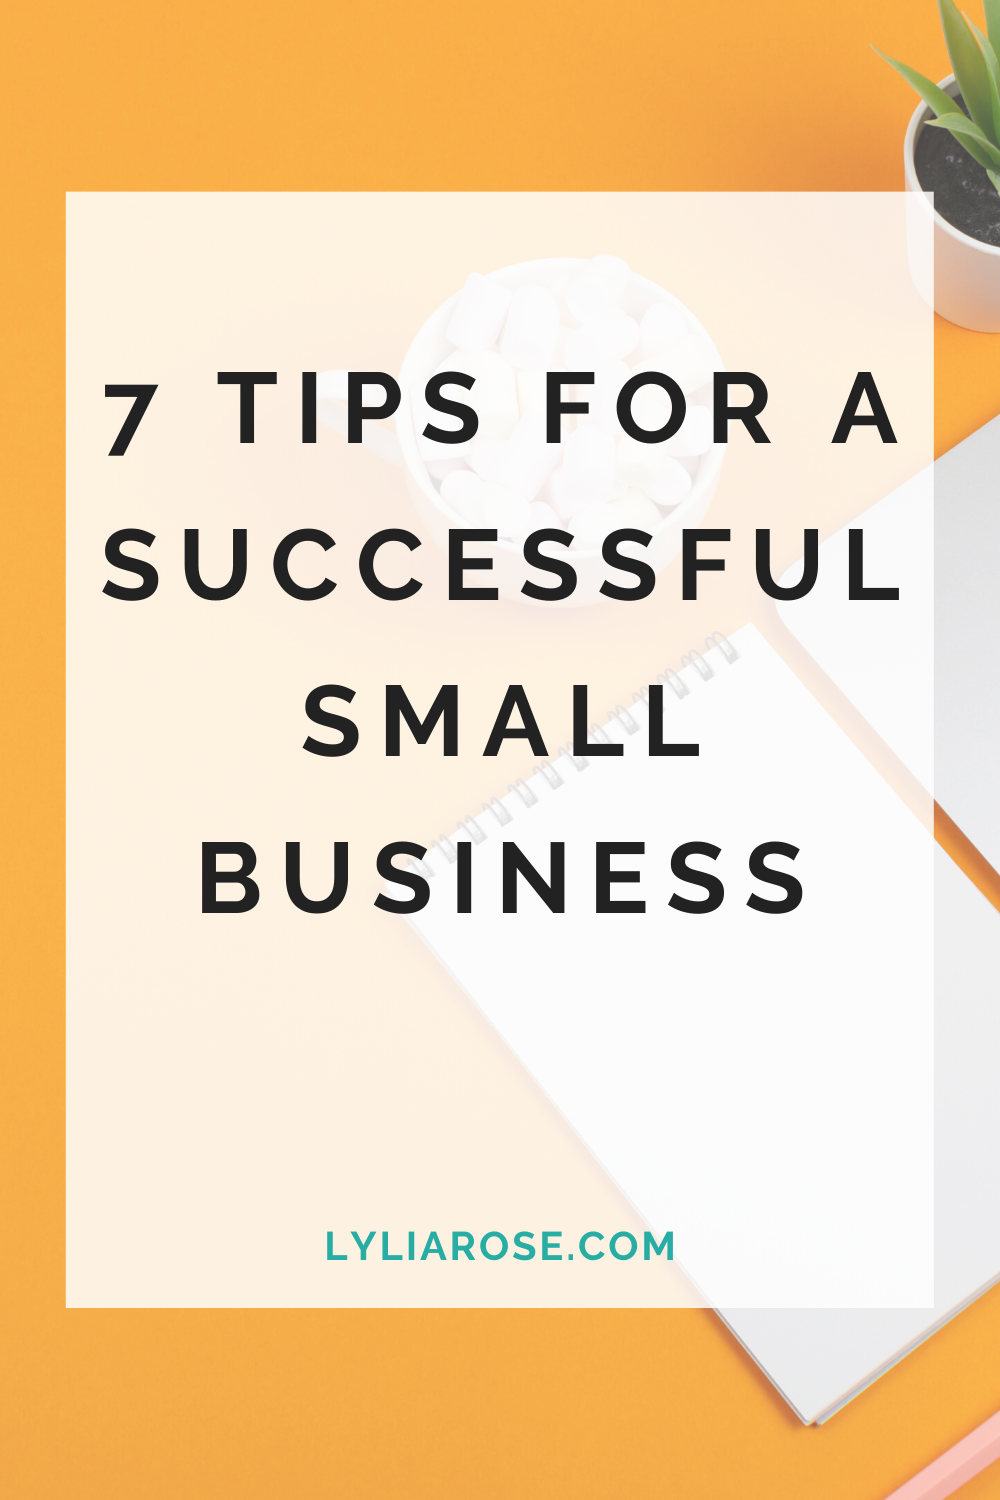 7 tips for a successful small business (4)